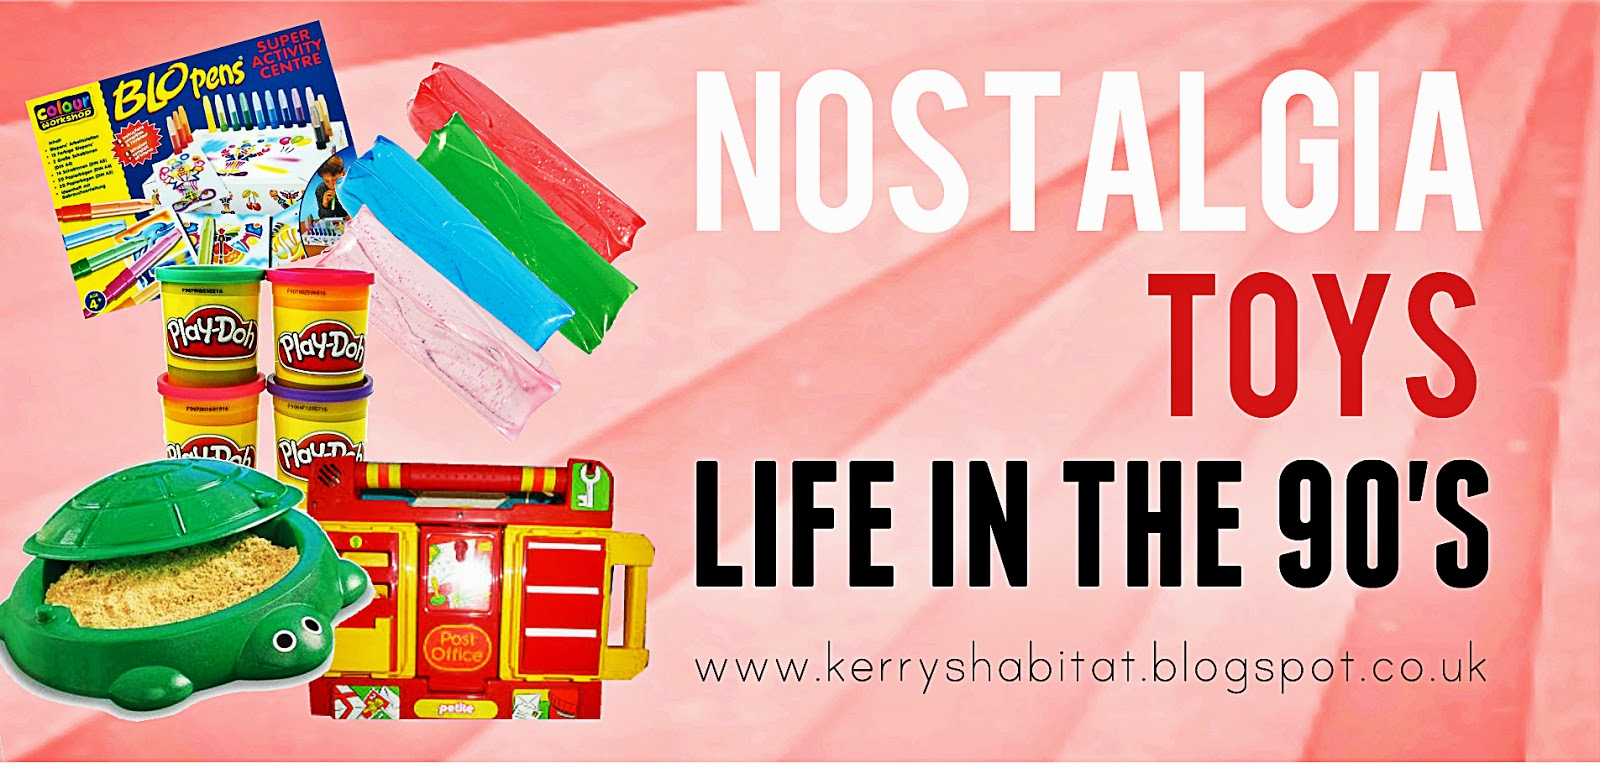 Kerry's Habitat: Nostalgia Playing: Toys From My Childhood